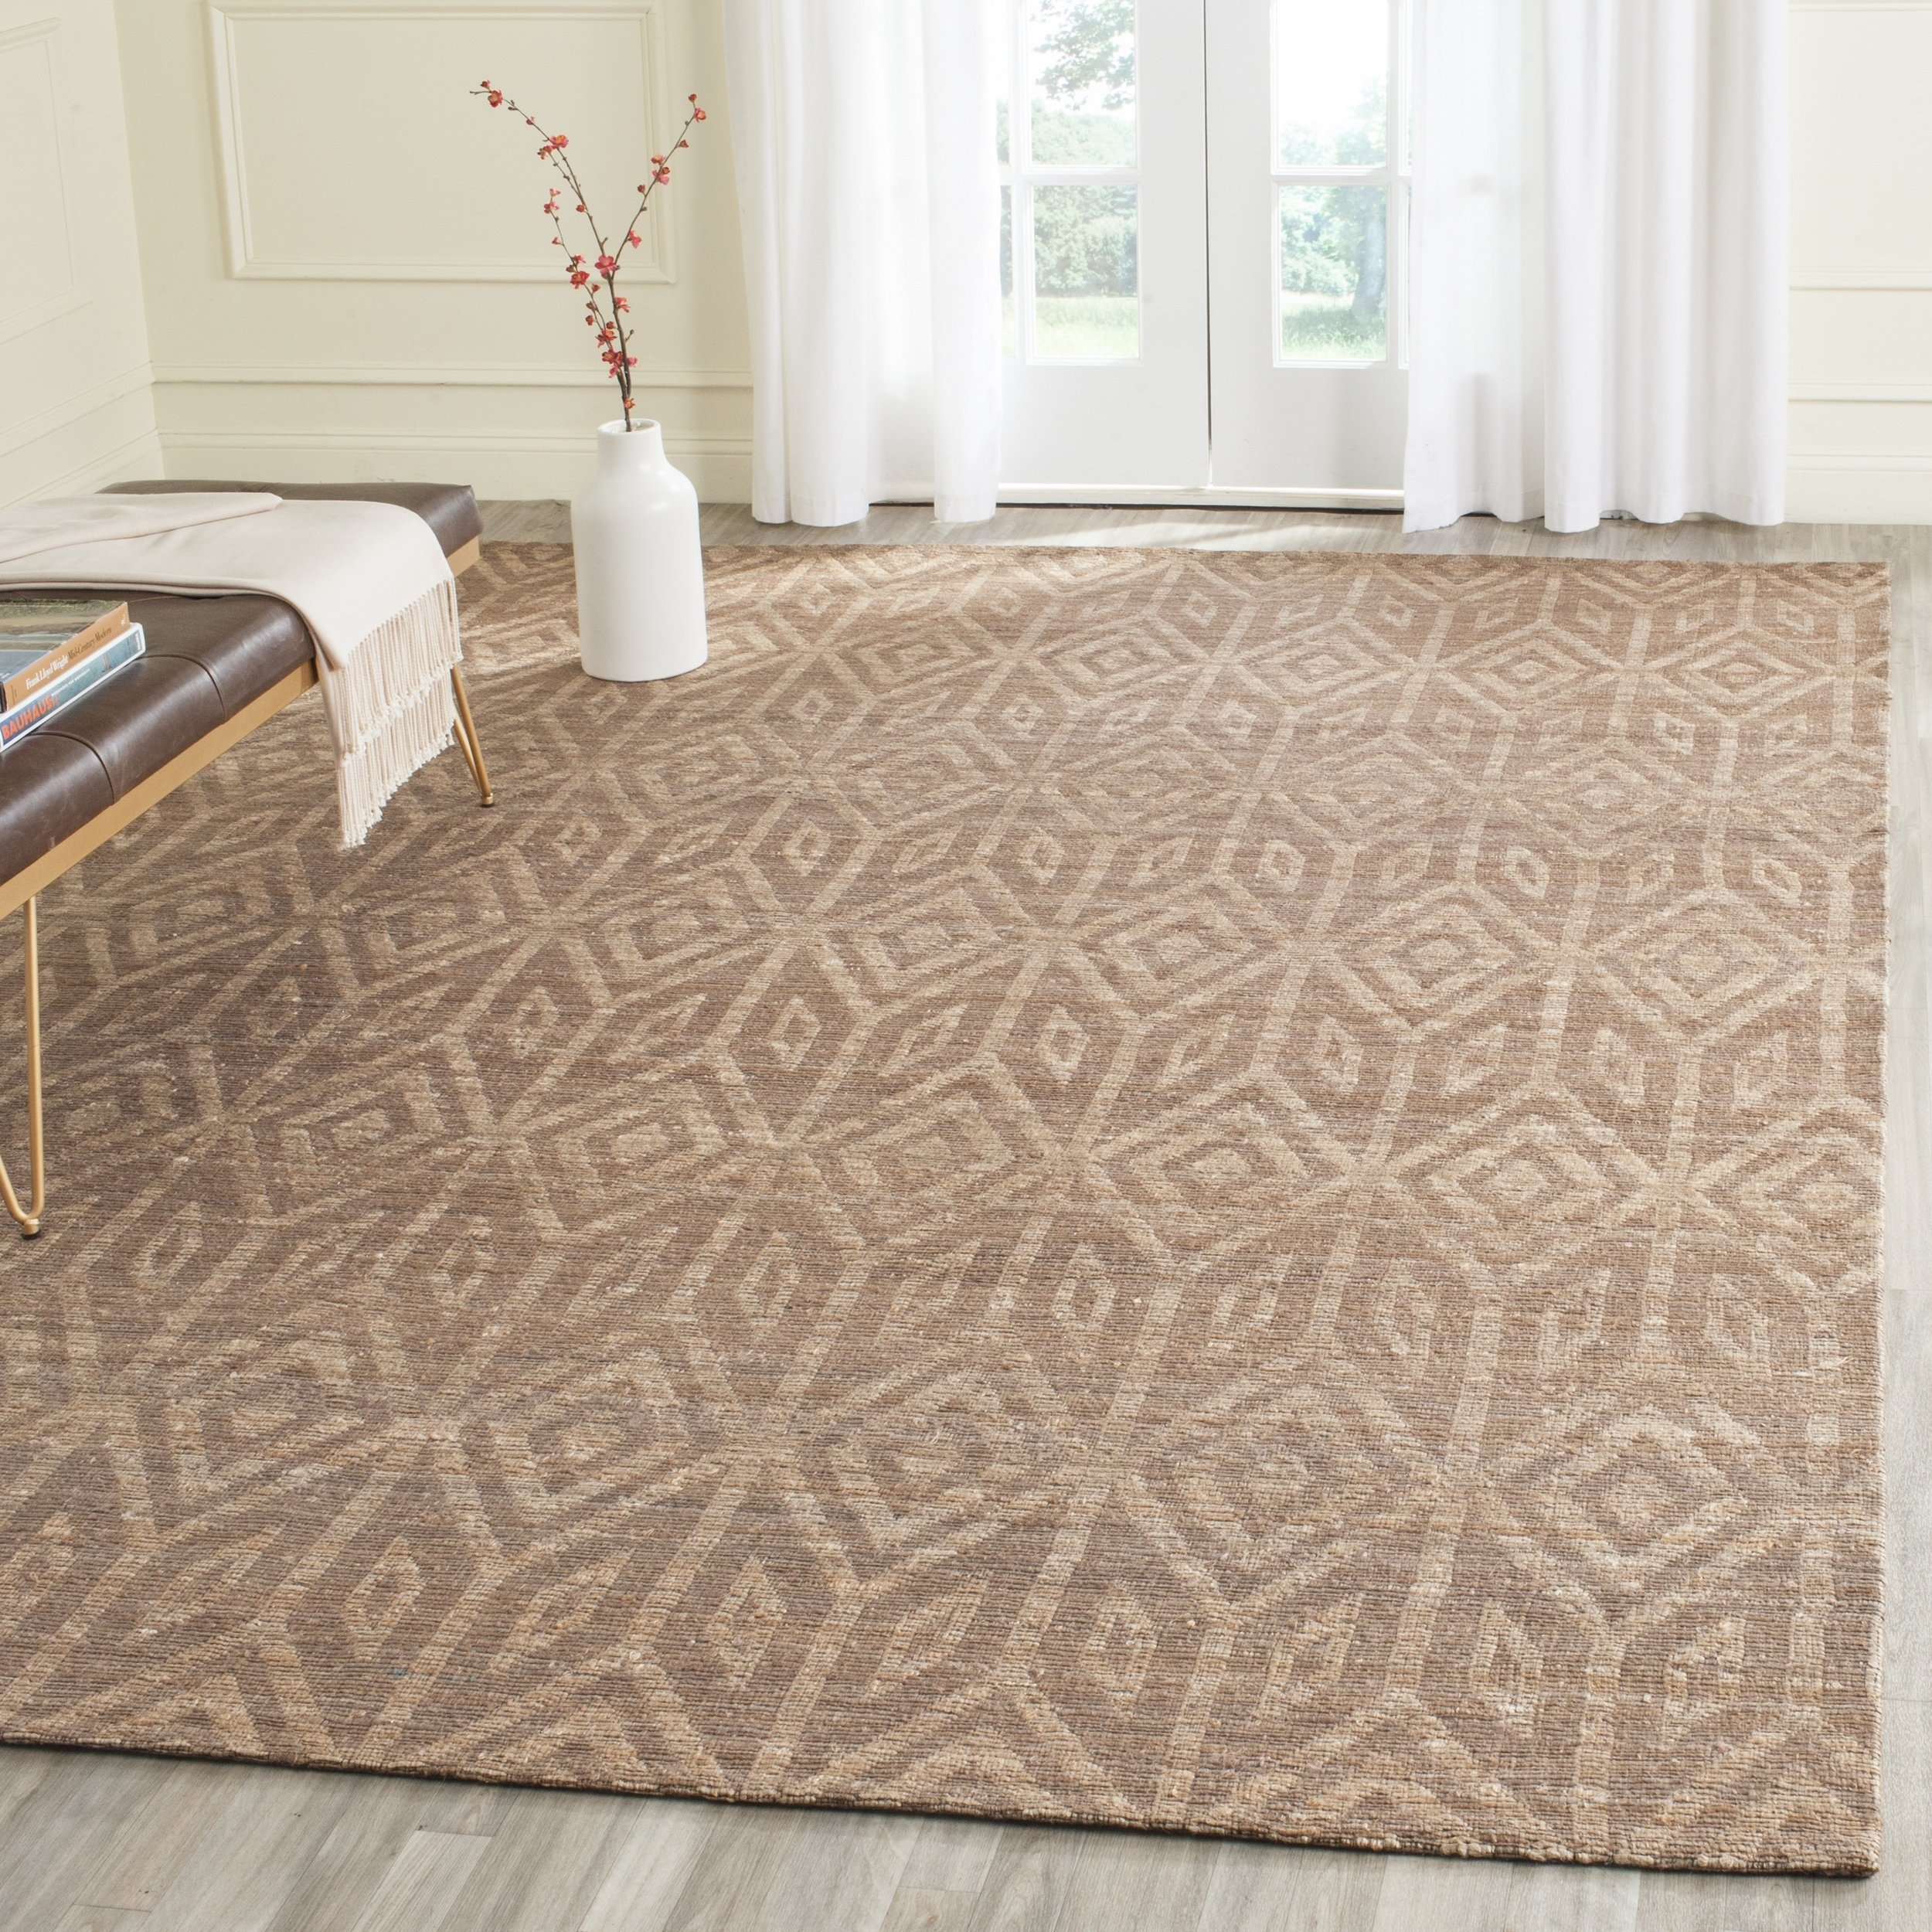 Safavieh Cape Cod Collection CAP411A Hand Woven Geometric Camel Jute and Cotton Area Rug (5' x 8') by Safavieh